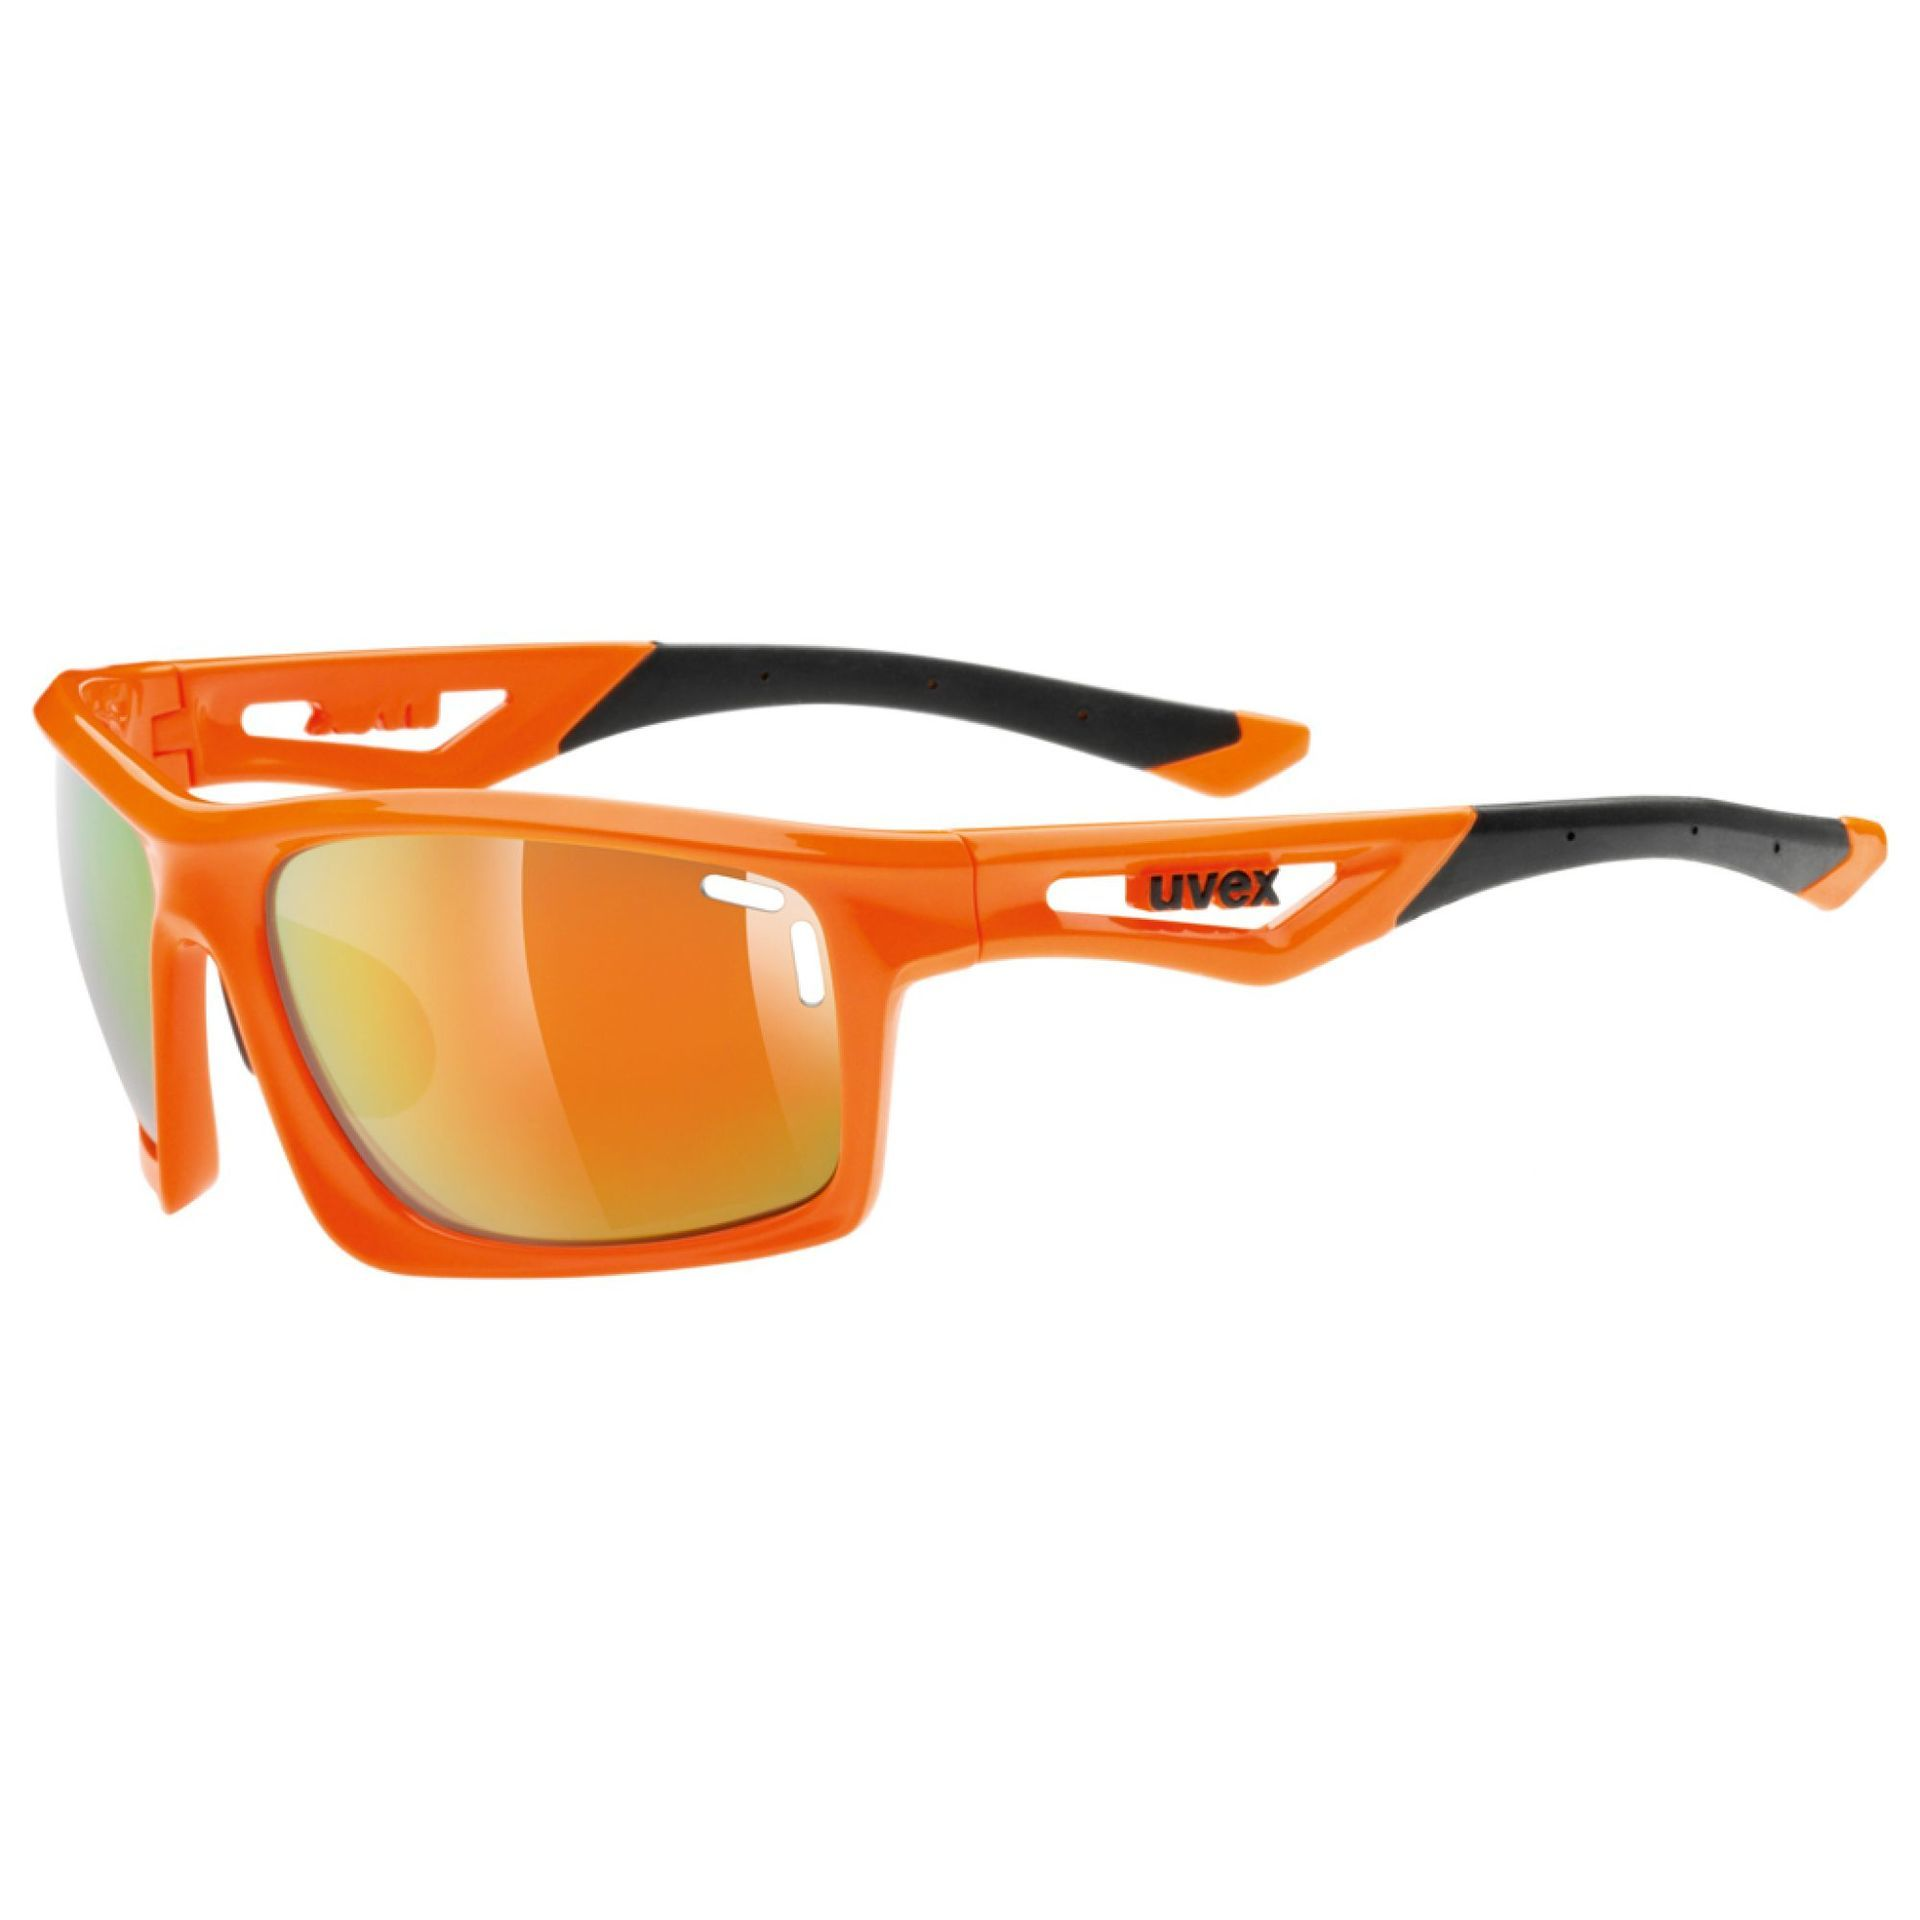 OKULARY UVEX SPORTSTYLE 700 ORANGE